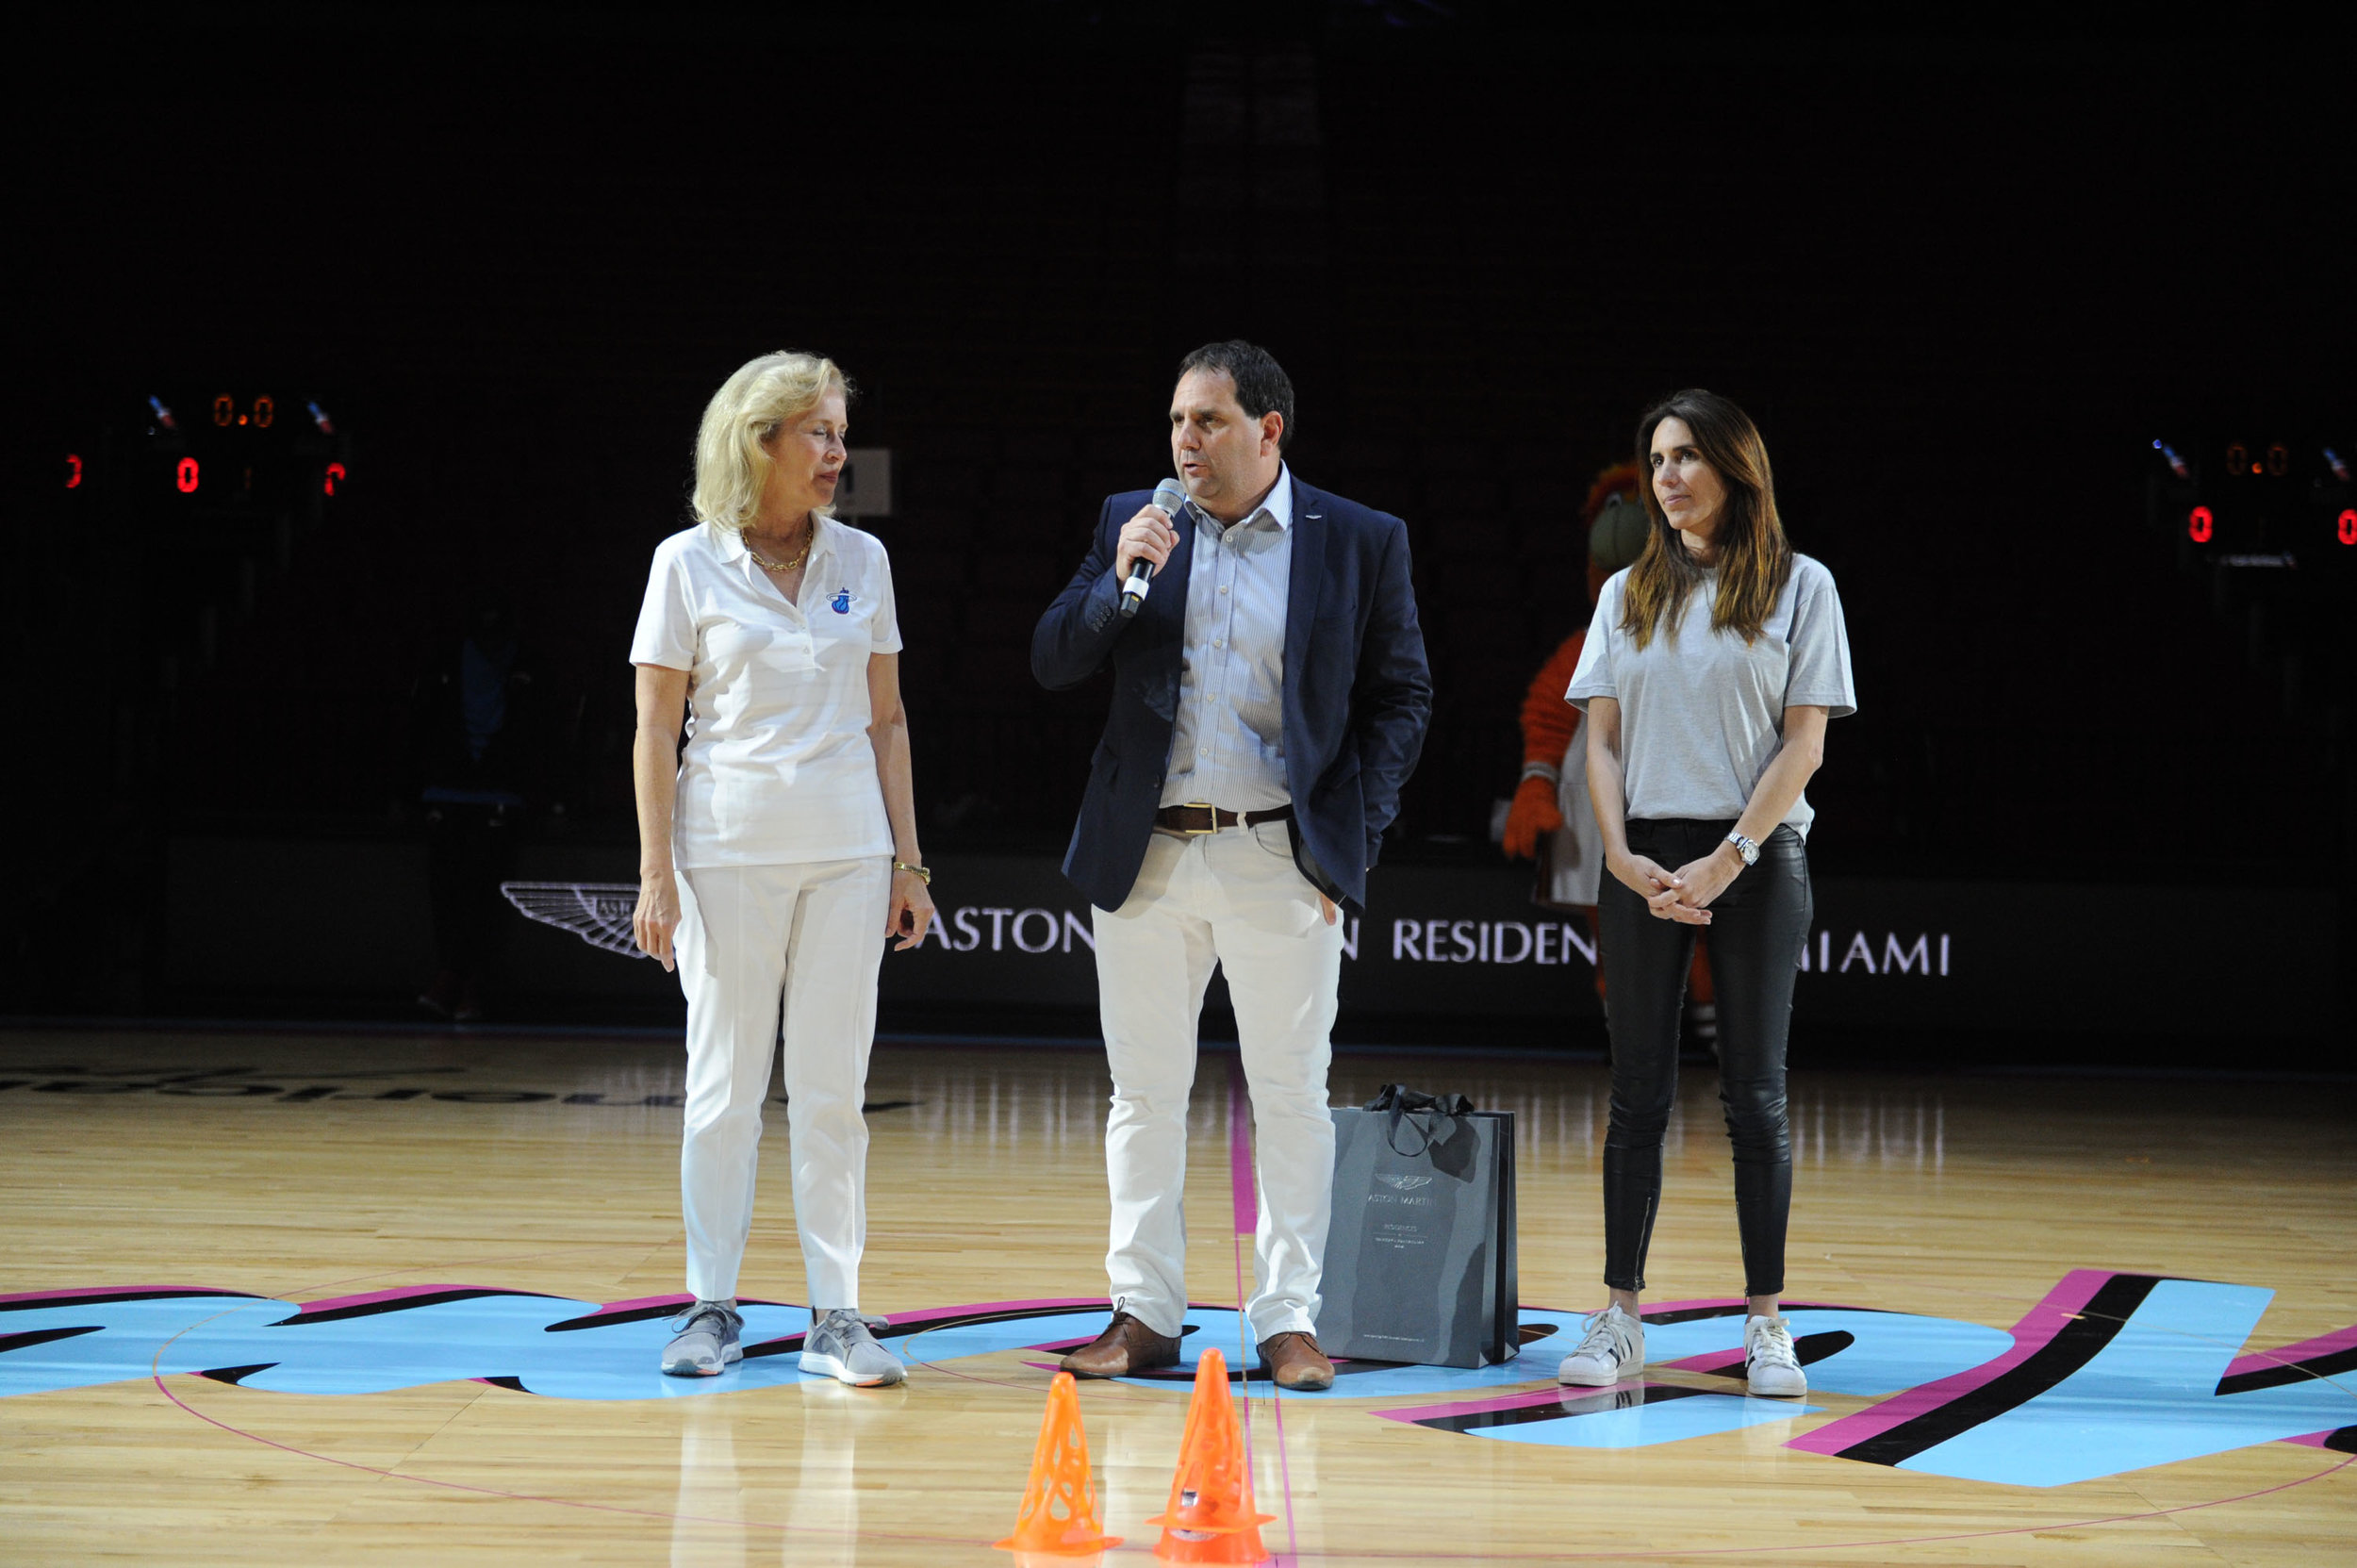 "Alicia Cervera Lamadrid, Alejandro Aljanati, & Maru Alvarez Speaking Aston Martin Residences and The Miami Heat Present ""Legend's Court"" To Commemorate Premium Corporate Partnership"